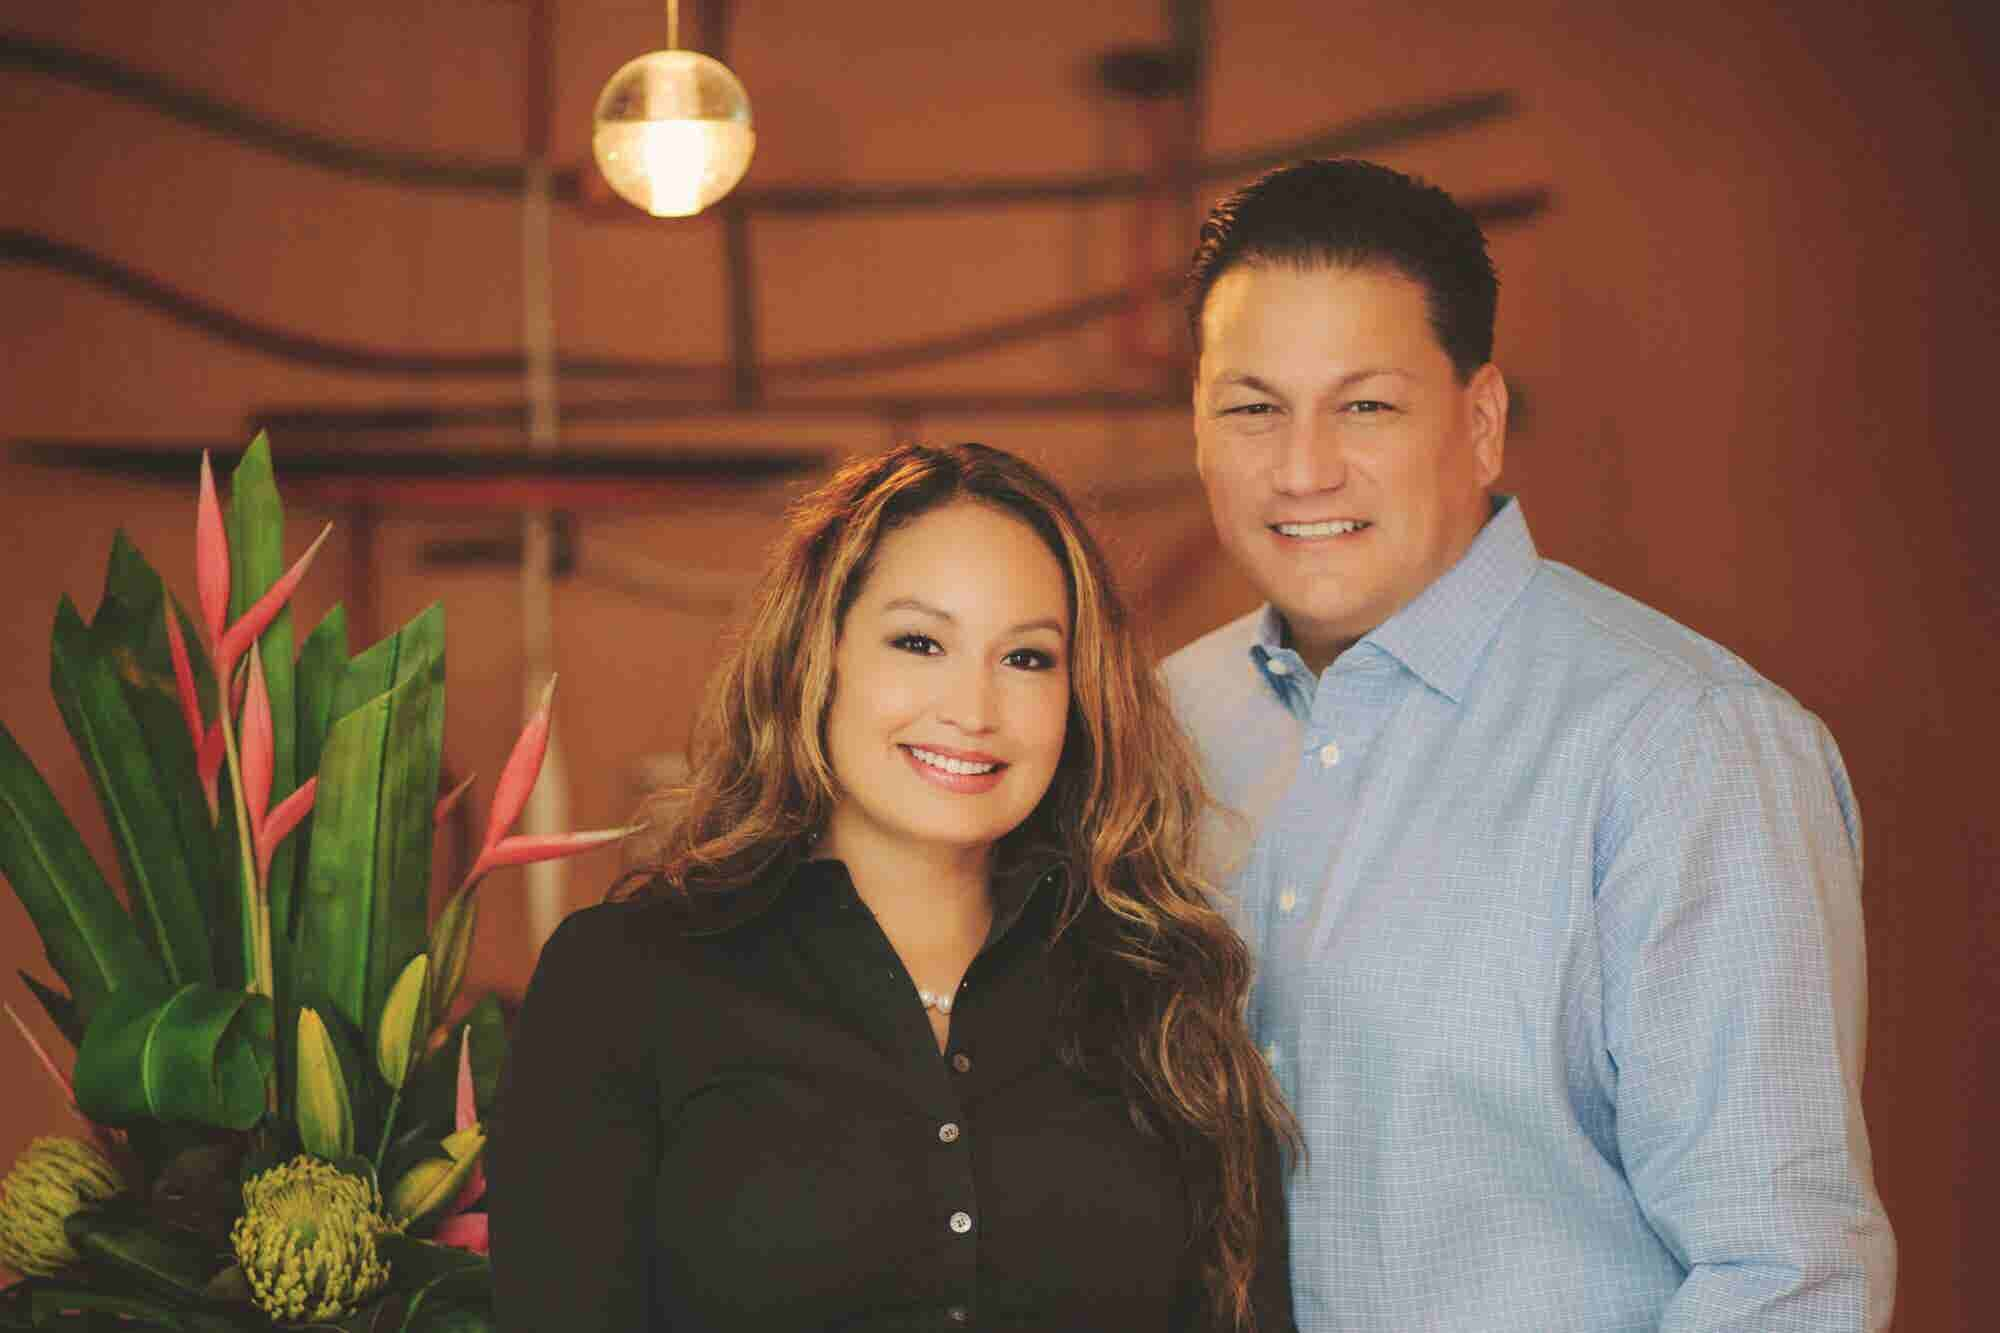 From Indian Country Comes Word: 'Native Business' Wants to Empower Nat...